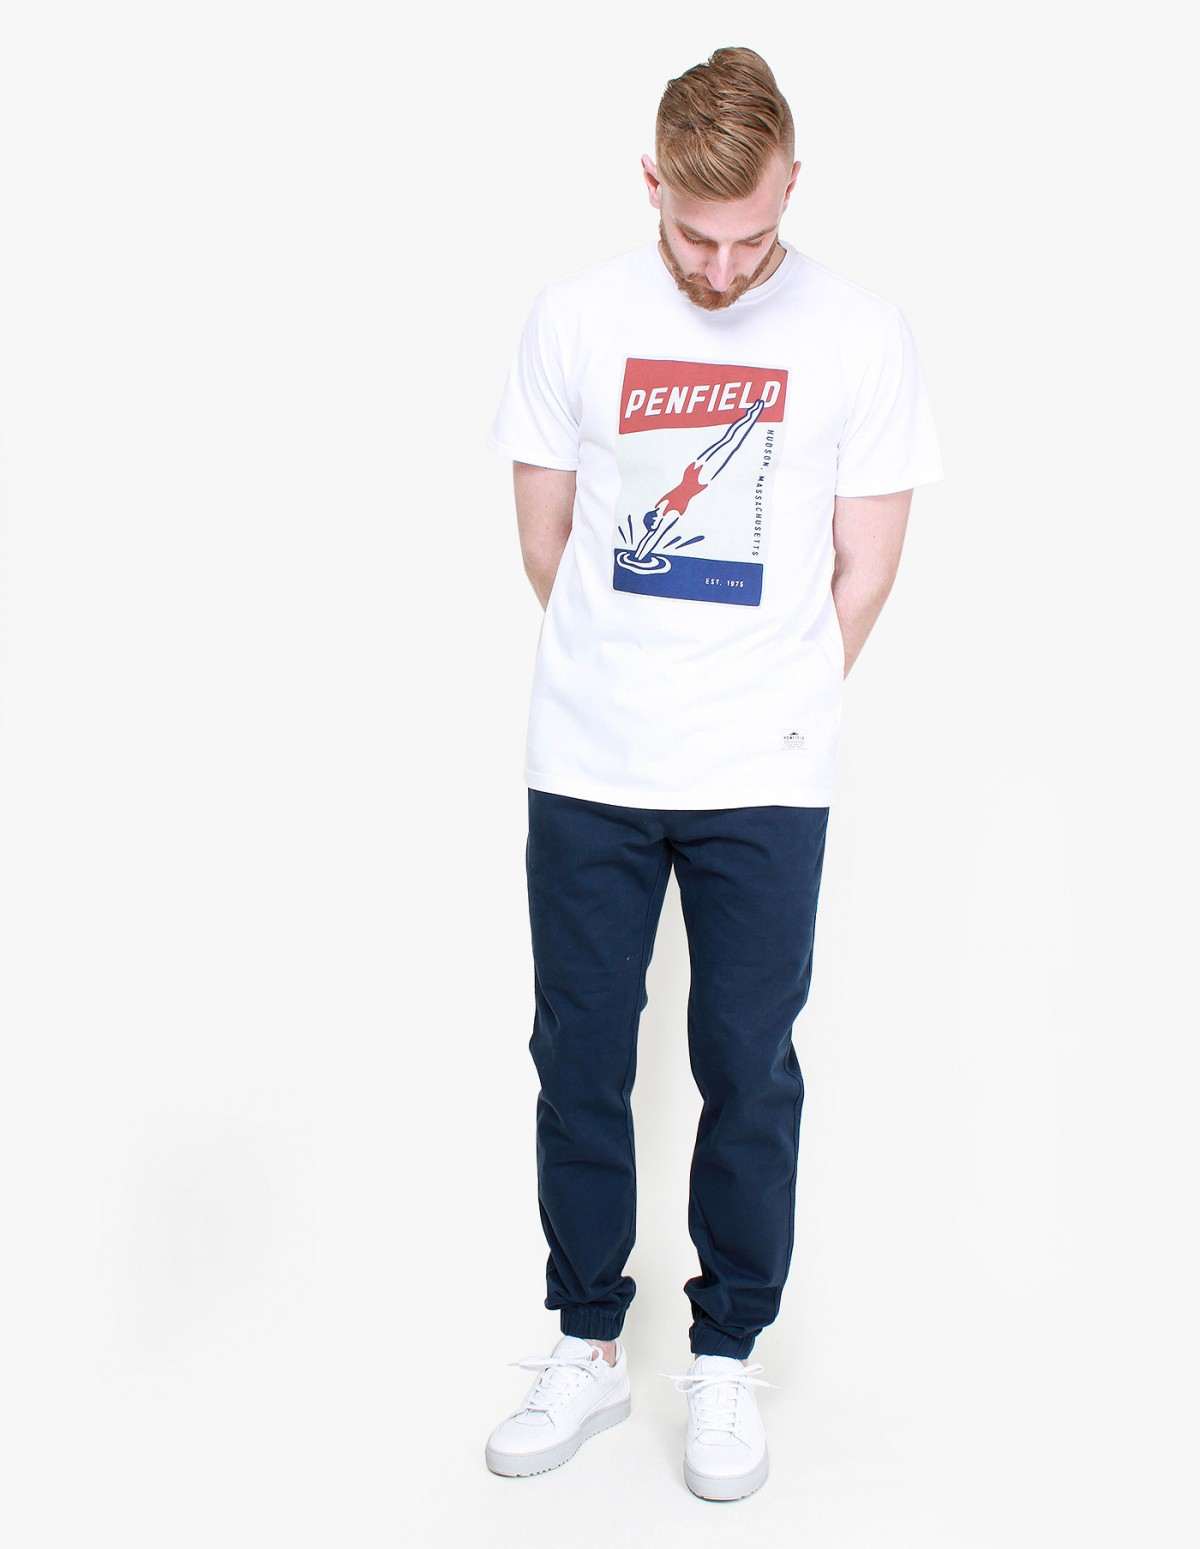 Penfield Diver T-Shirt in White